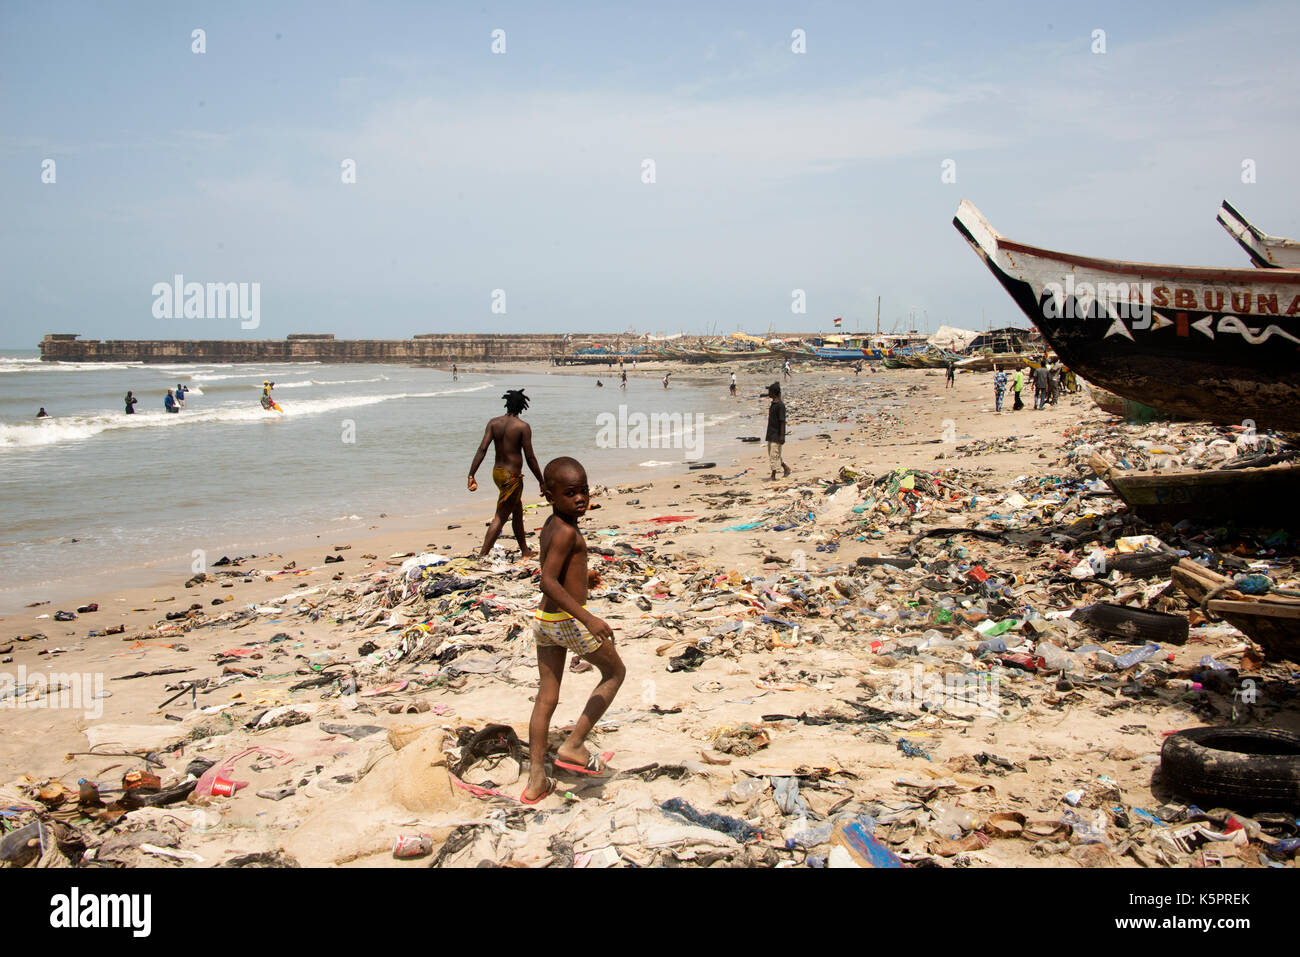 Beach in Jamestown, Accra, Ghana - Stock Image